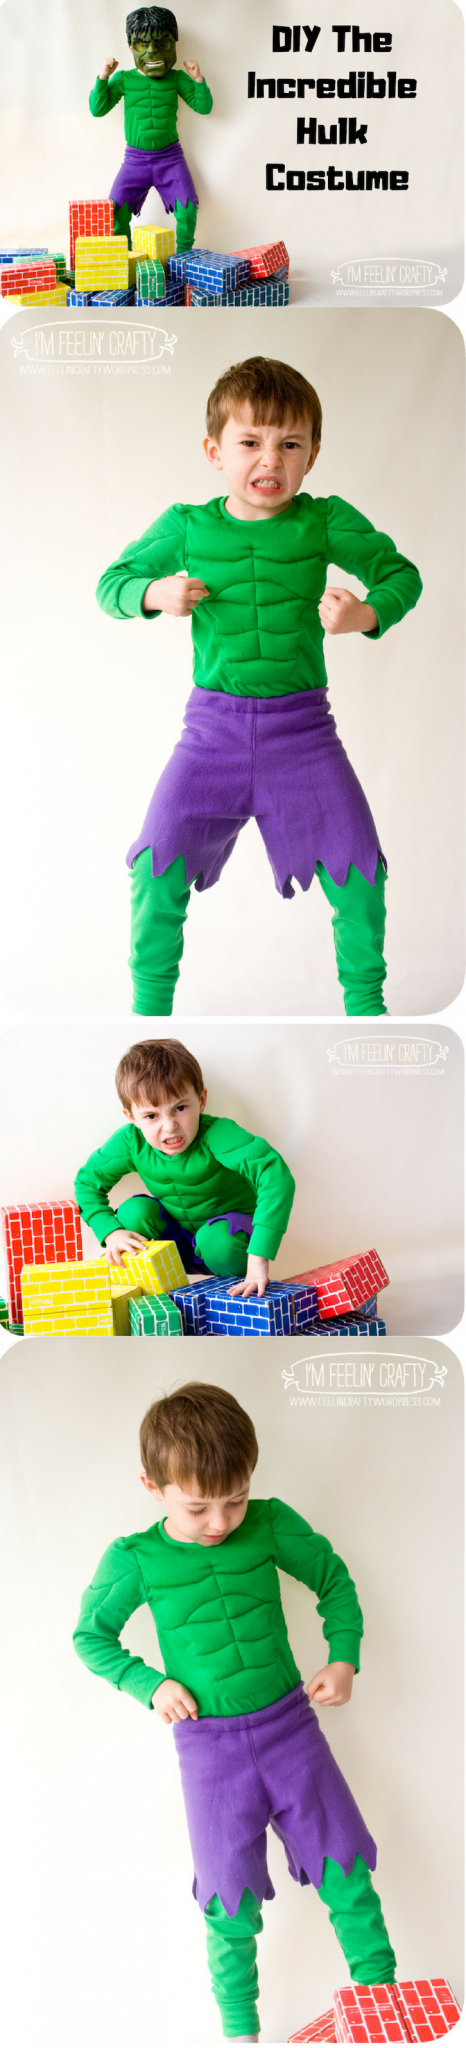 diy marvel costumes